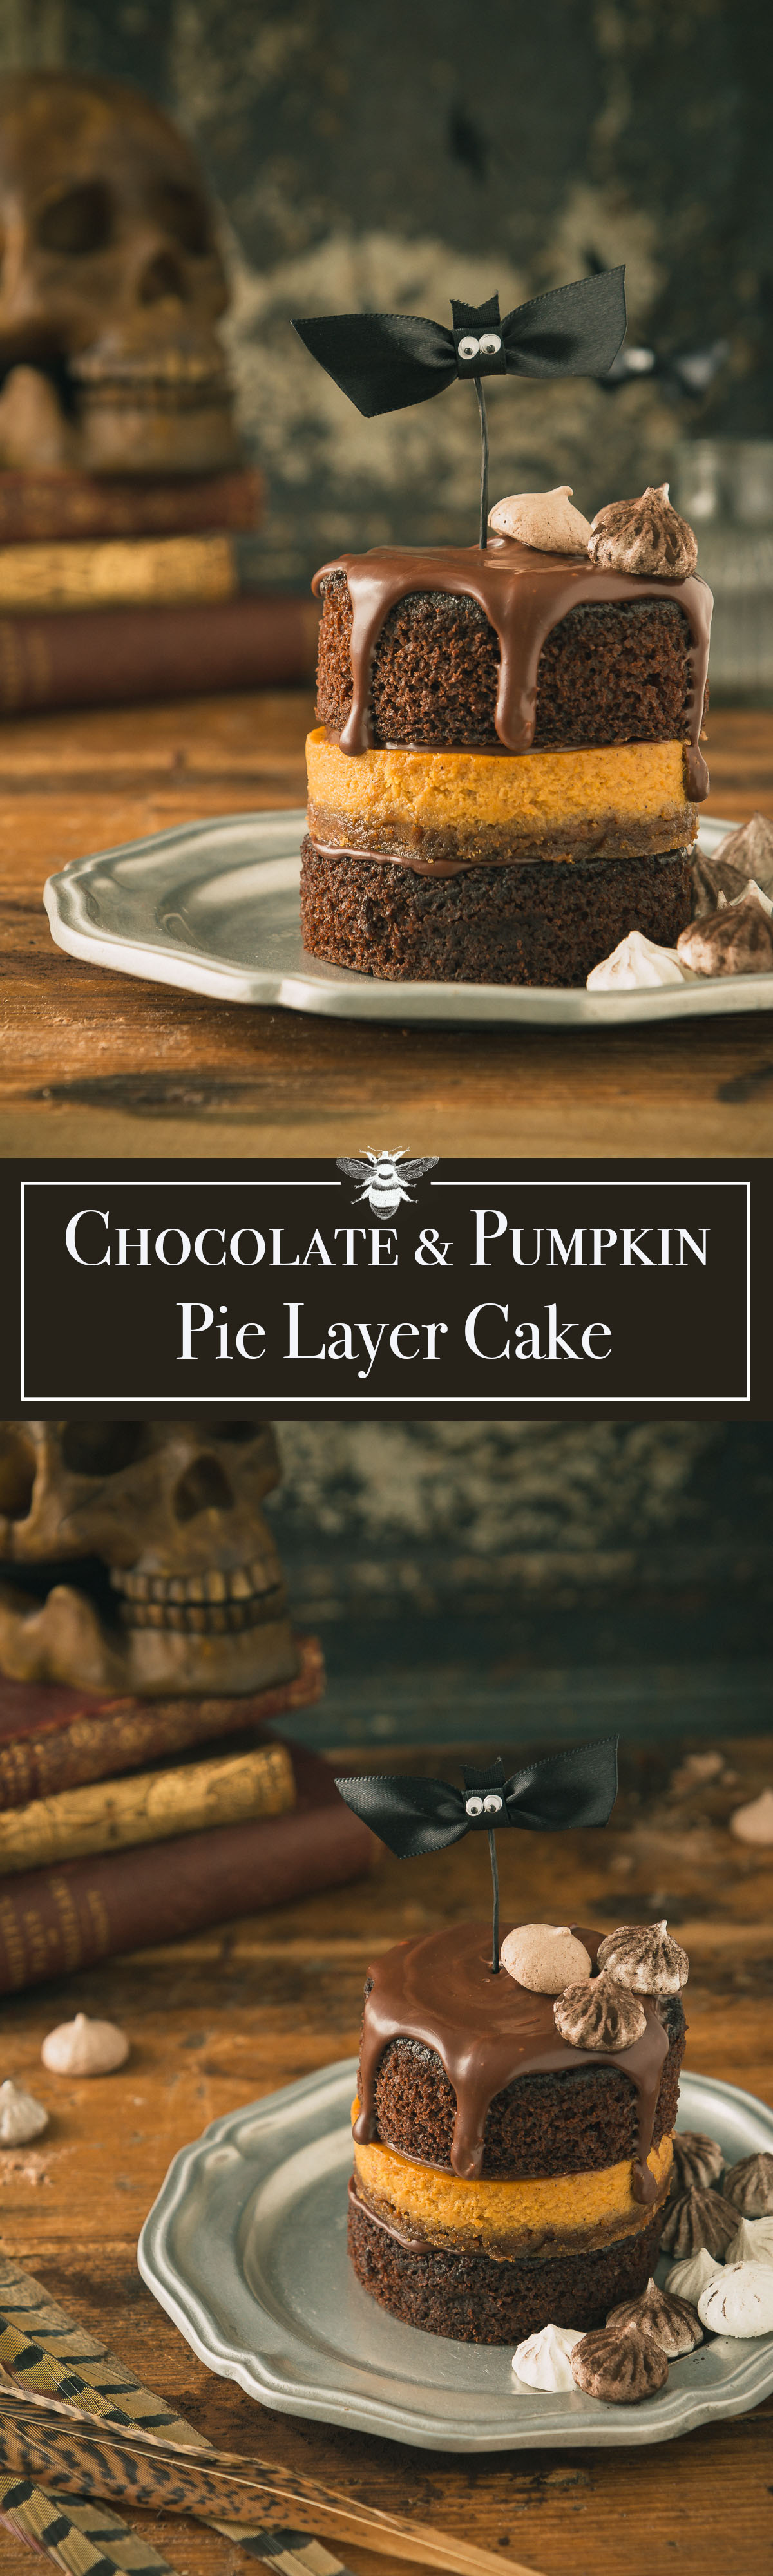 Chocolate & Pumpkin Pie Layer Cake